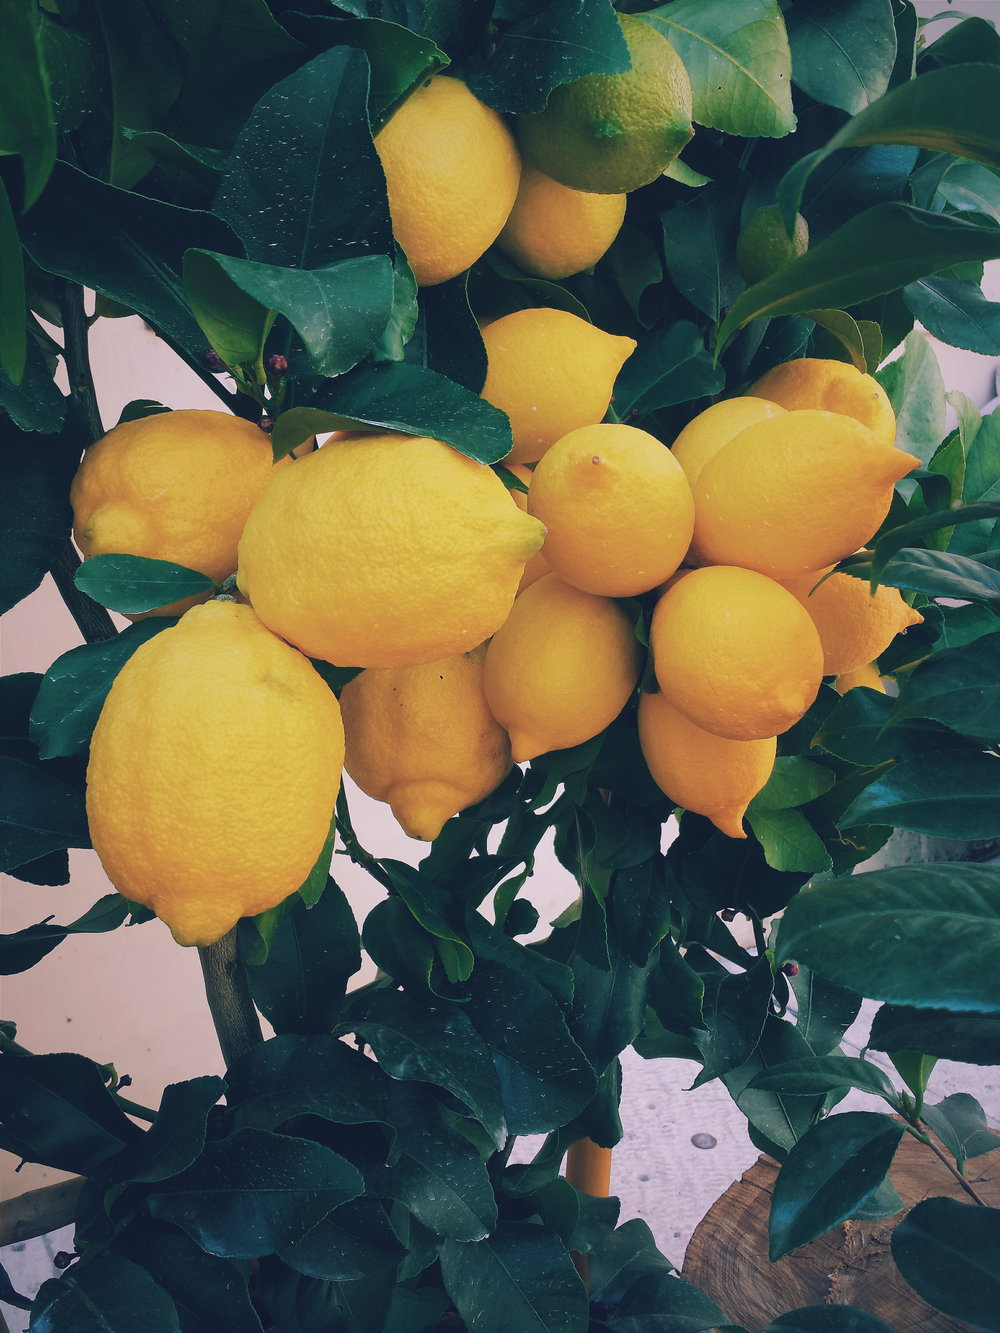 Lemon Essential Oil - Enter your name and email to win!